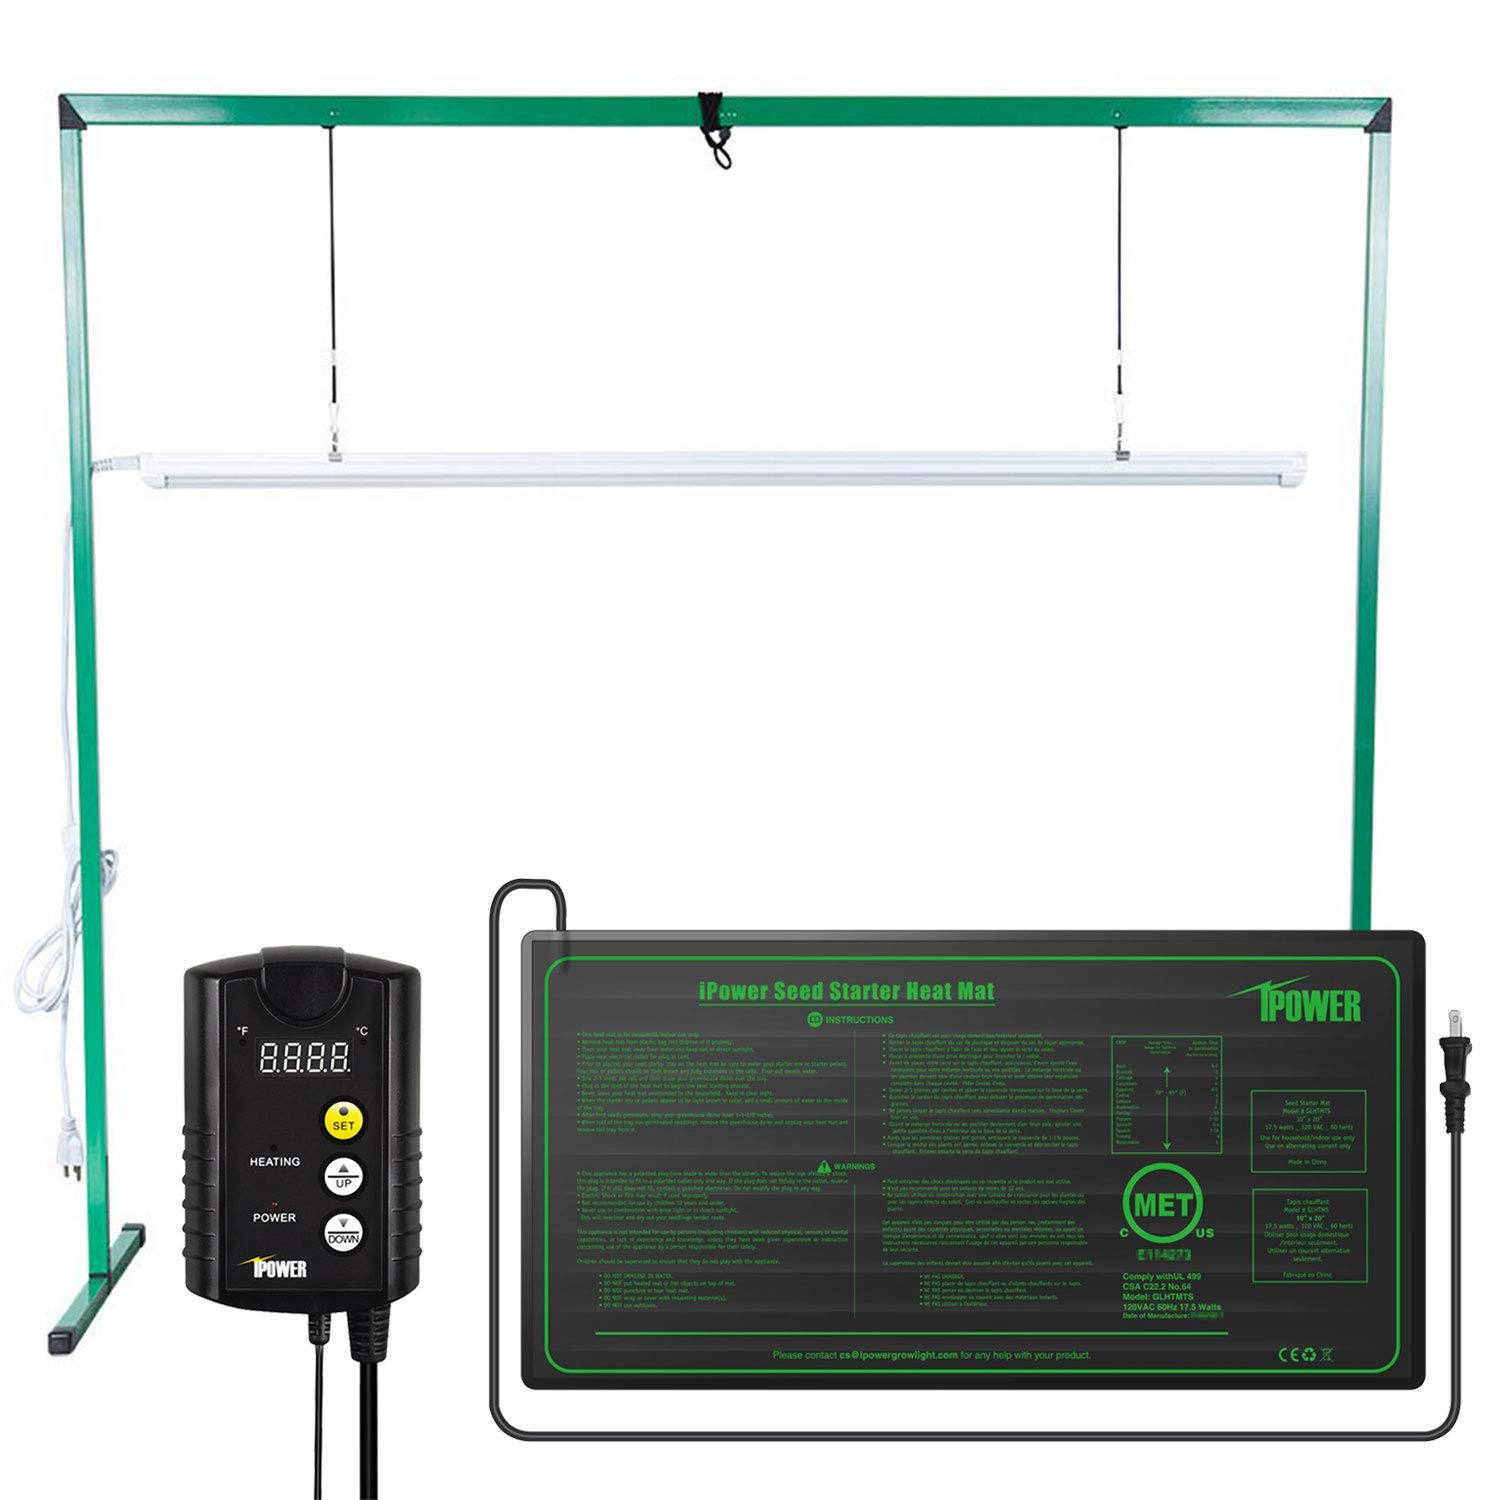 iPower 36W 4 Feet LED Fluorescent Grow Light Stand Rack (6400k) and 10'' x 20.5'' Seedling Heat Mat and 40-108 Degrees Fahrenheit Digital Heat Mat Thermostat Controller Combo Set for Seed Germination